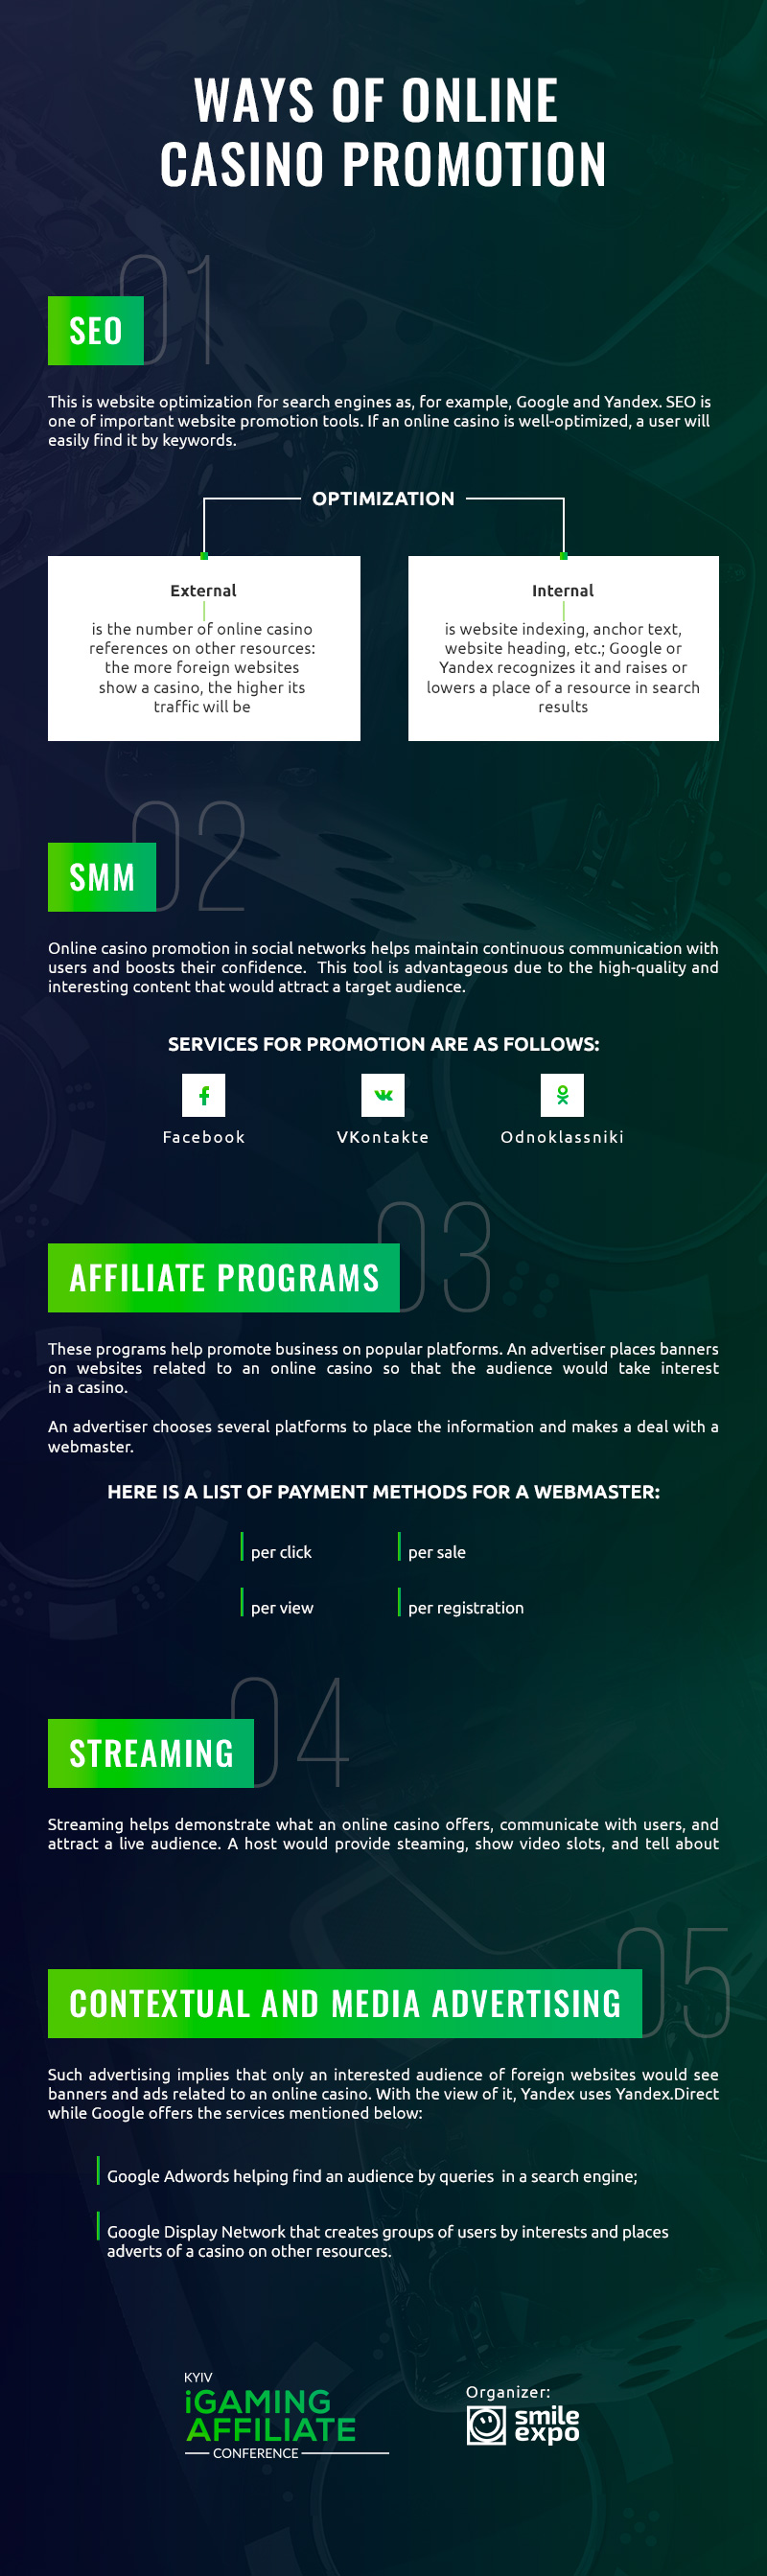 Top 5 tools for online casino promotion. Infographic